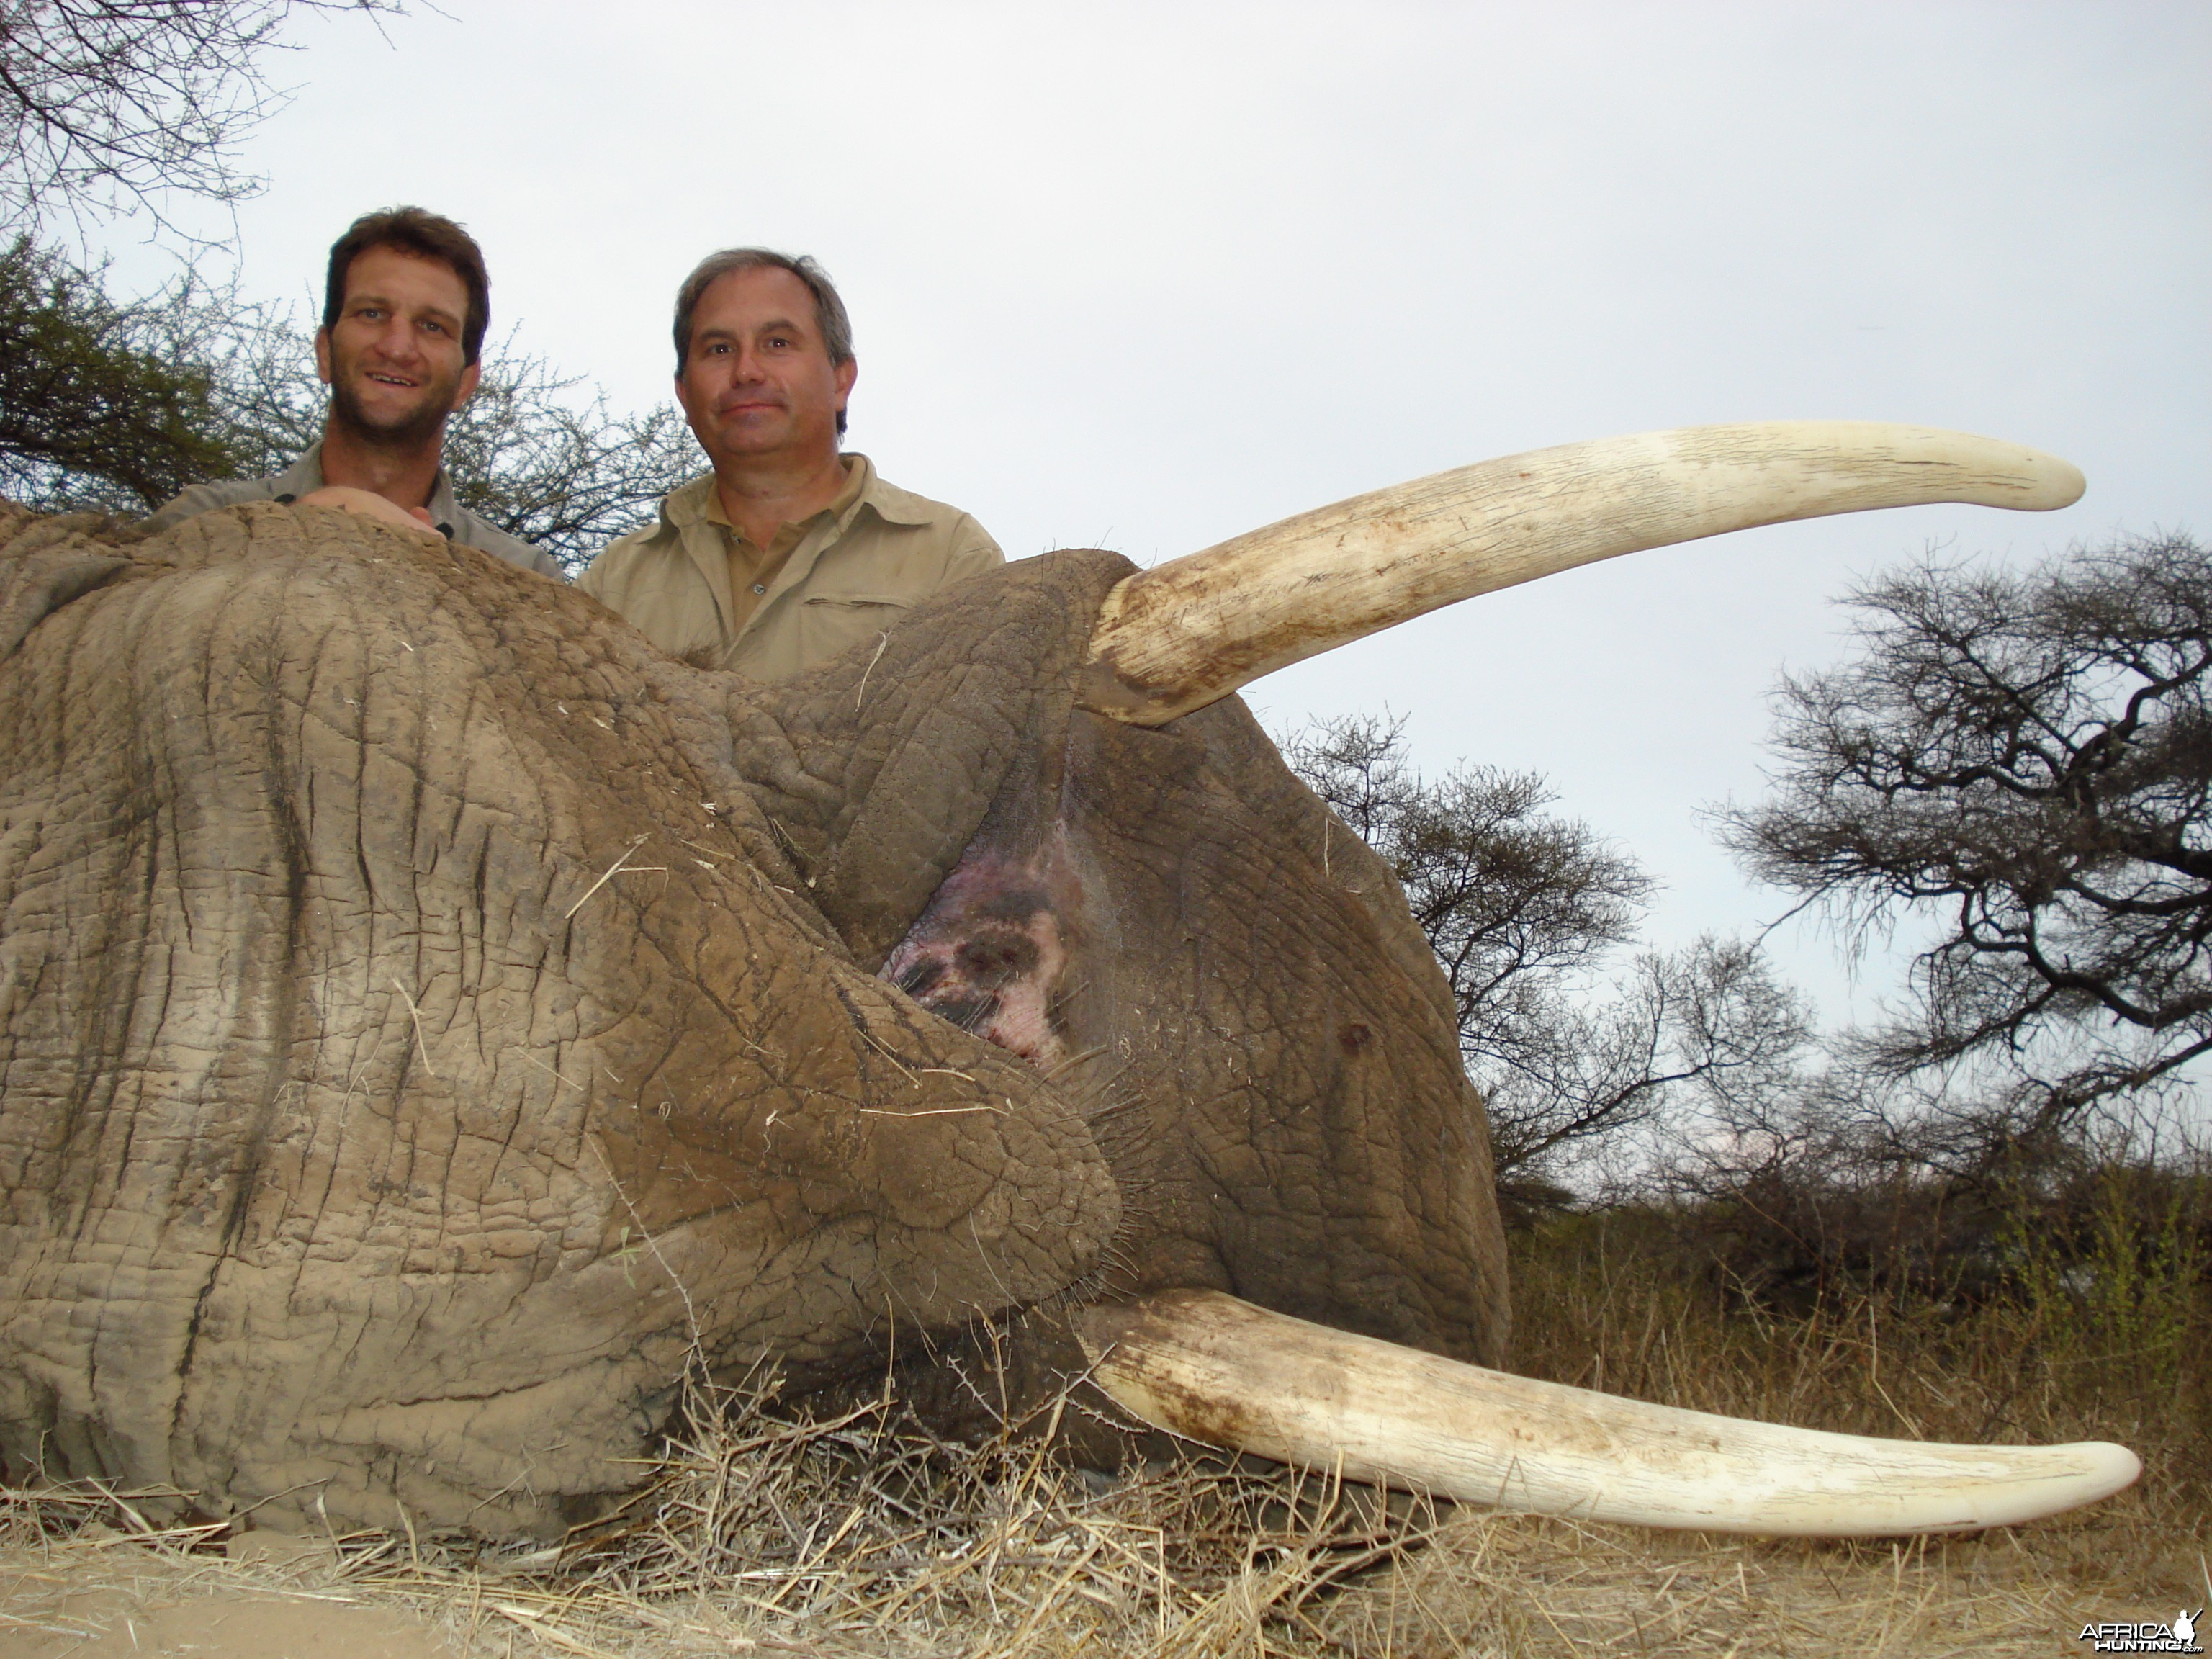 Elephant hunted in Zimbabwe with Steyn Caracal Safaris